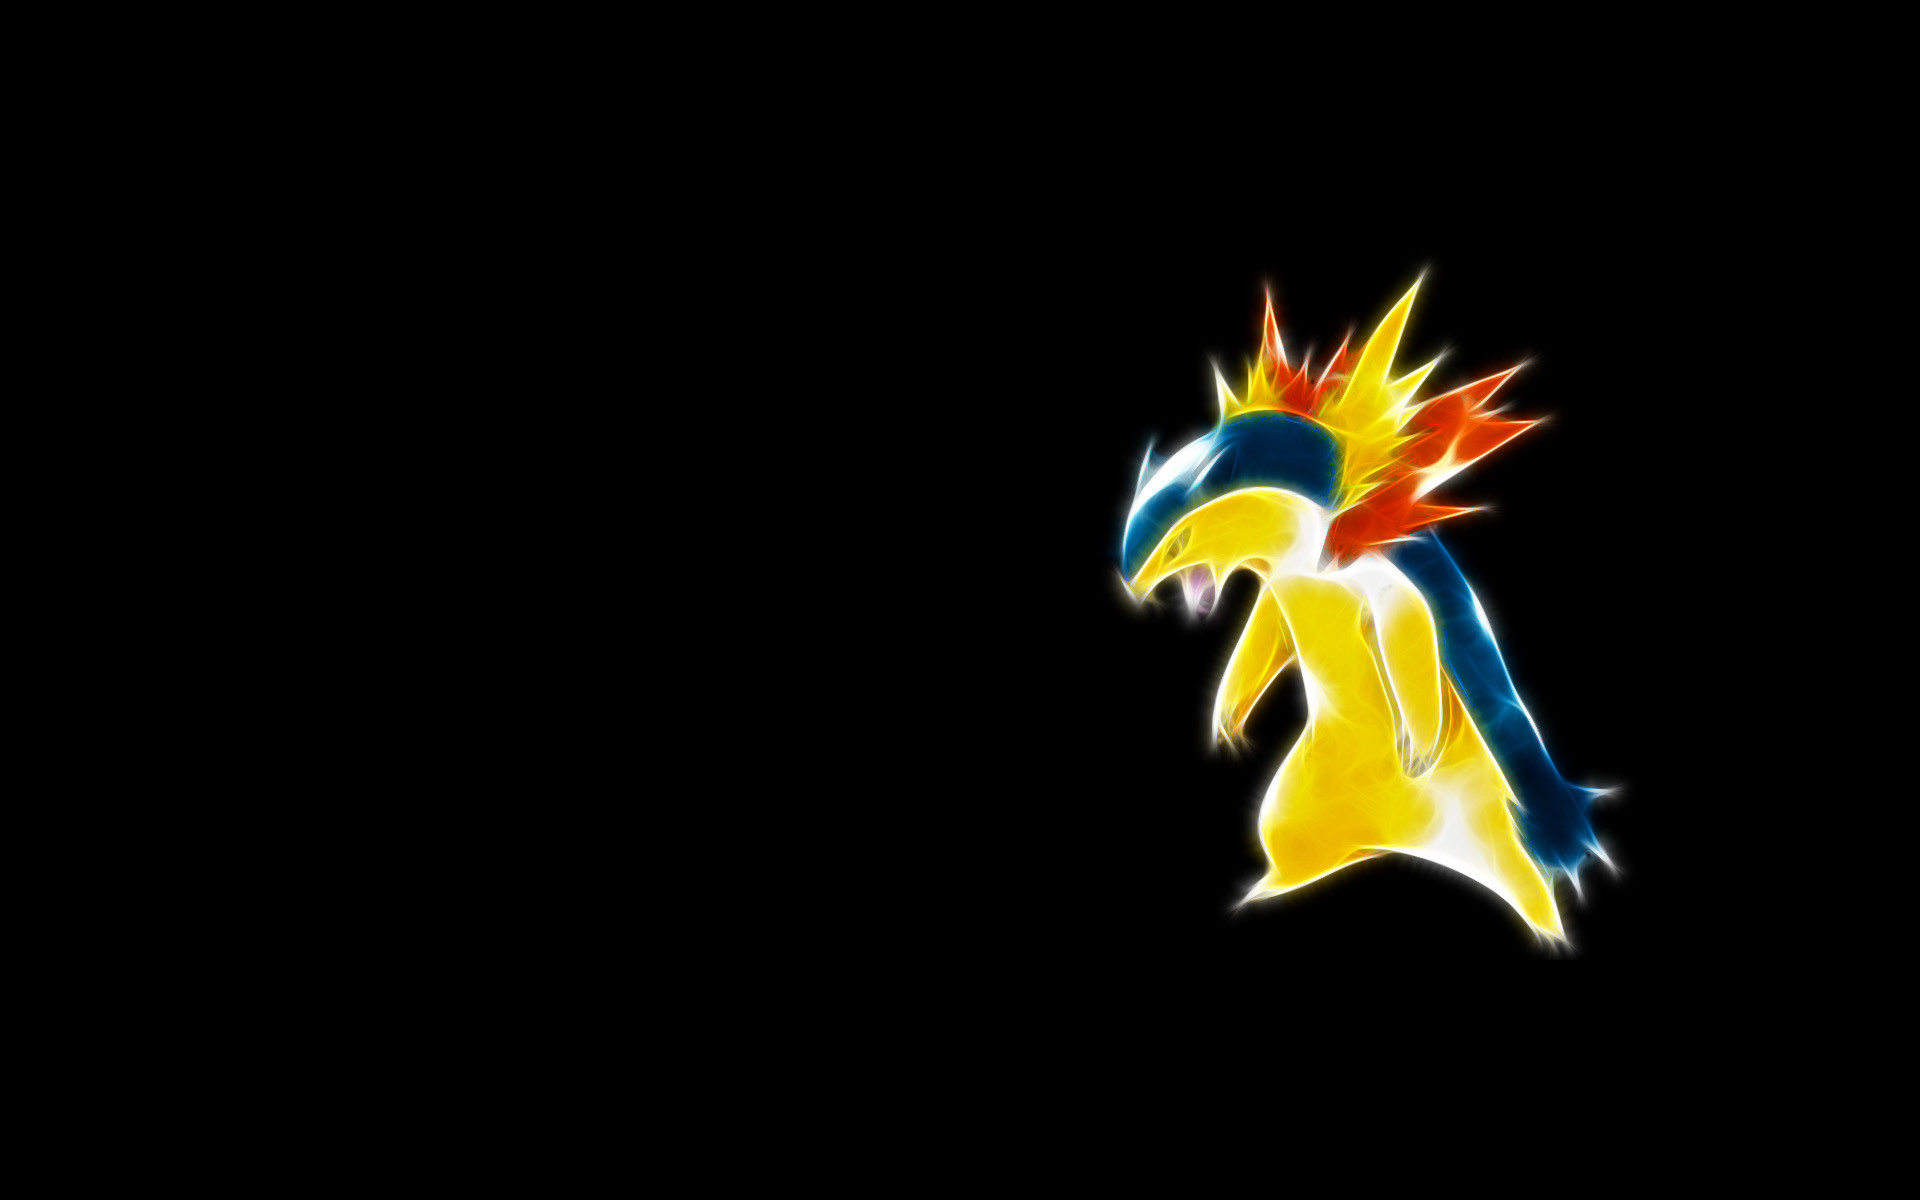 1920x1200 okemon Wallpapers HD Images of Pokemon Ultra HD K